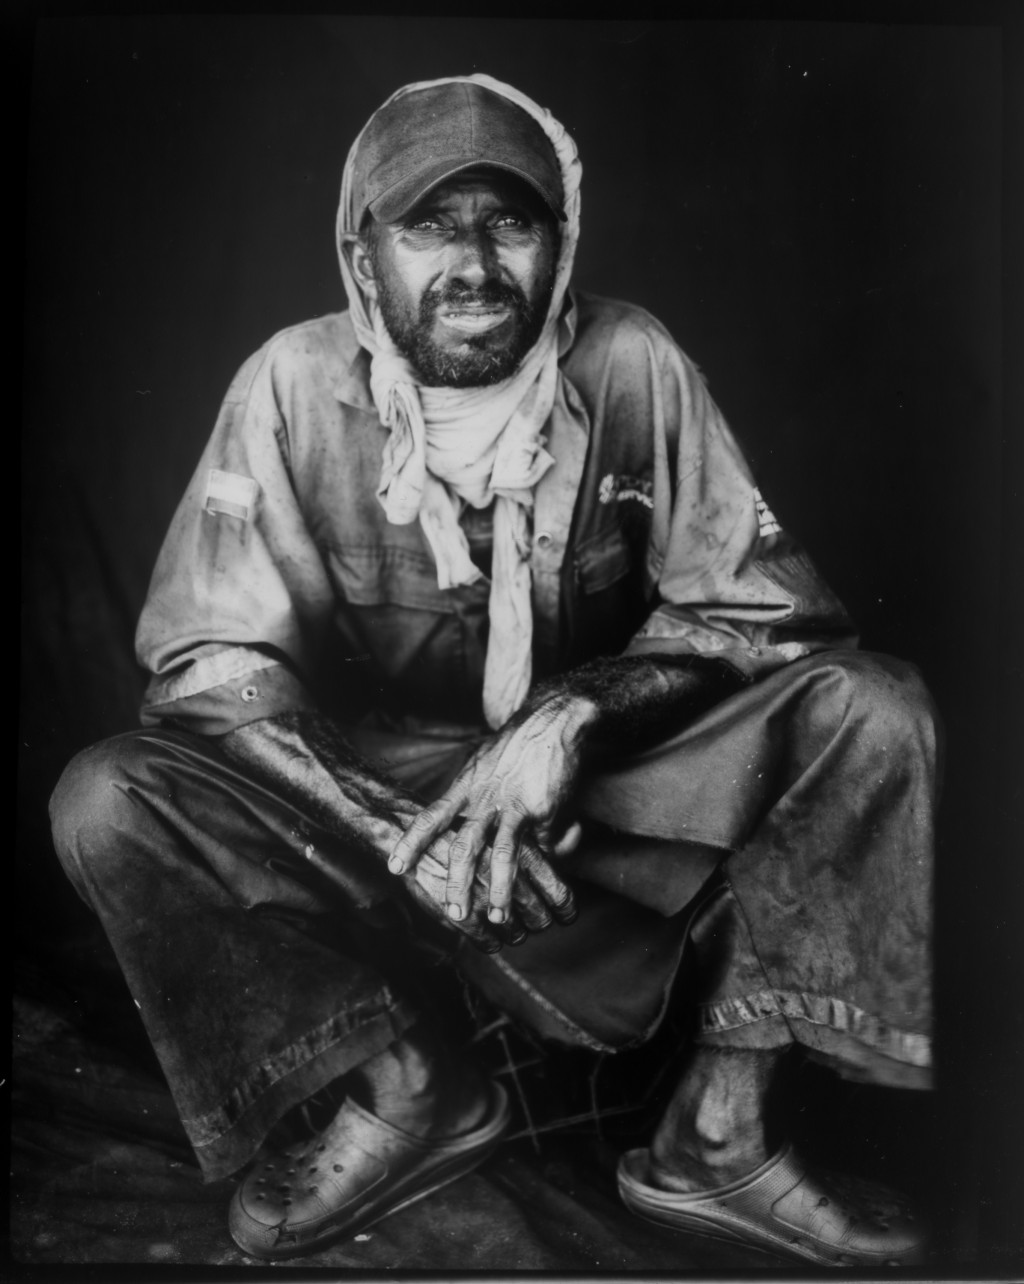 Former oil worker Jose Gregorio Romero poses for a portrait in one of his old PDVSA uniforms, which he uses to work as a fisherman, after harvesting c